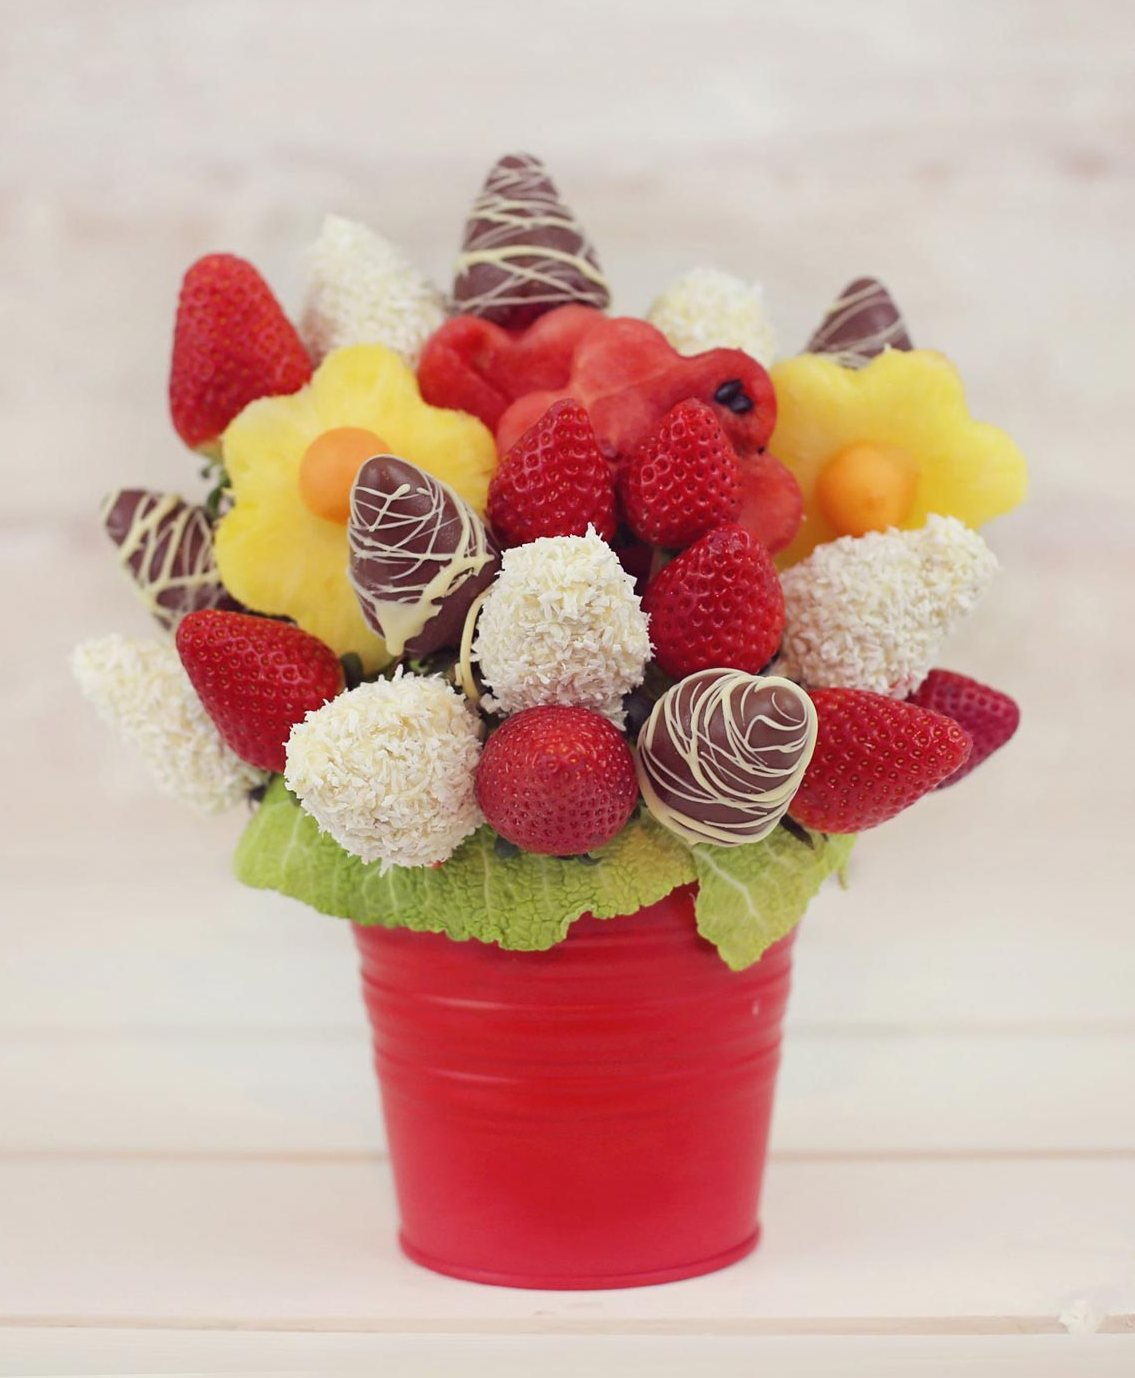 fruit gift baskets bouquets amp arrangements edible 4